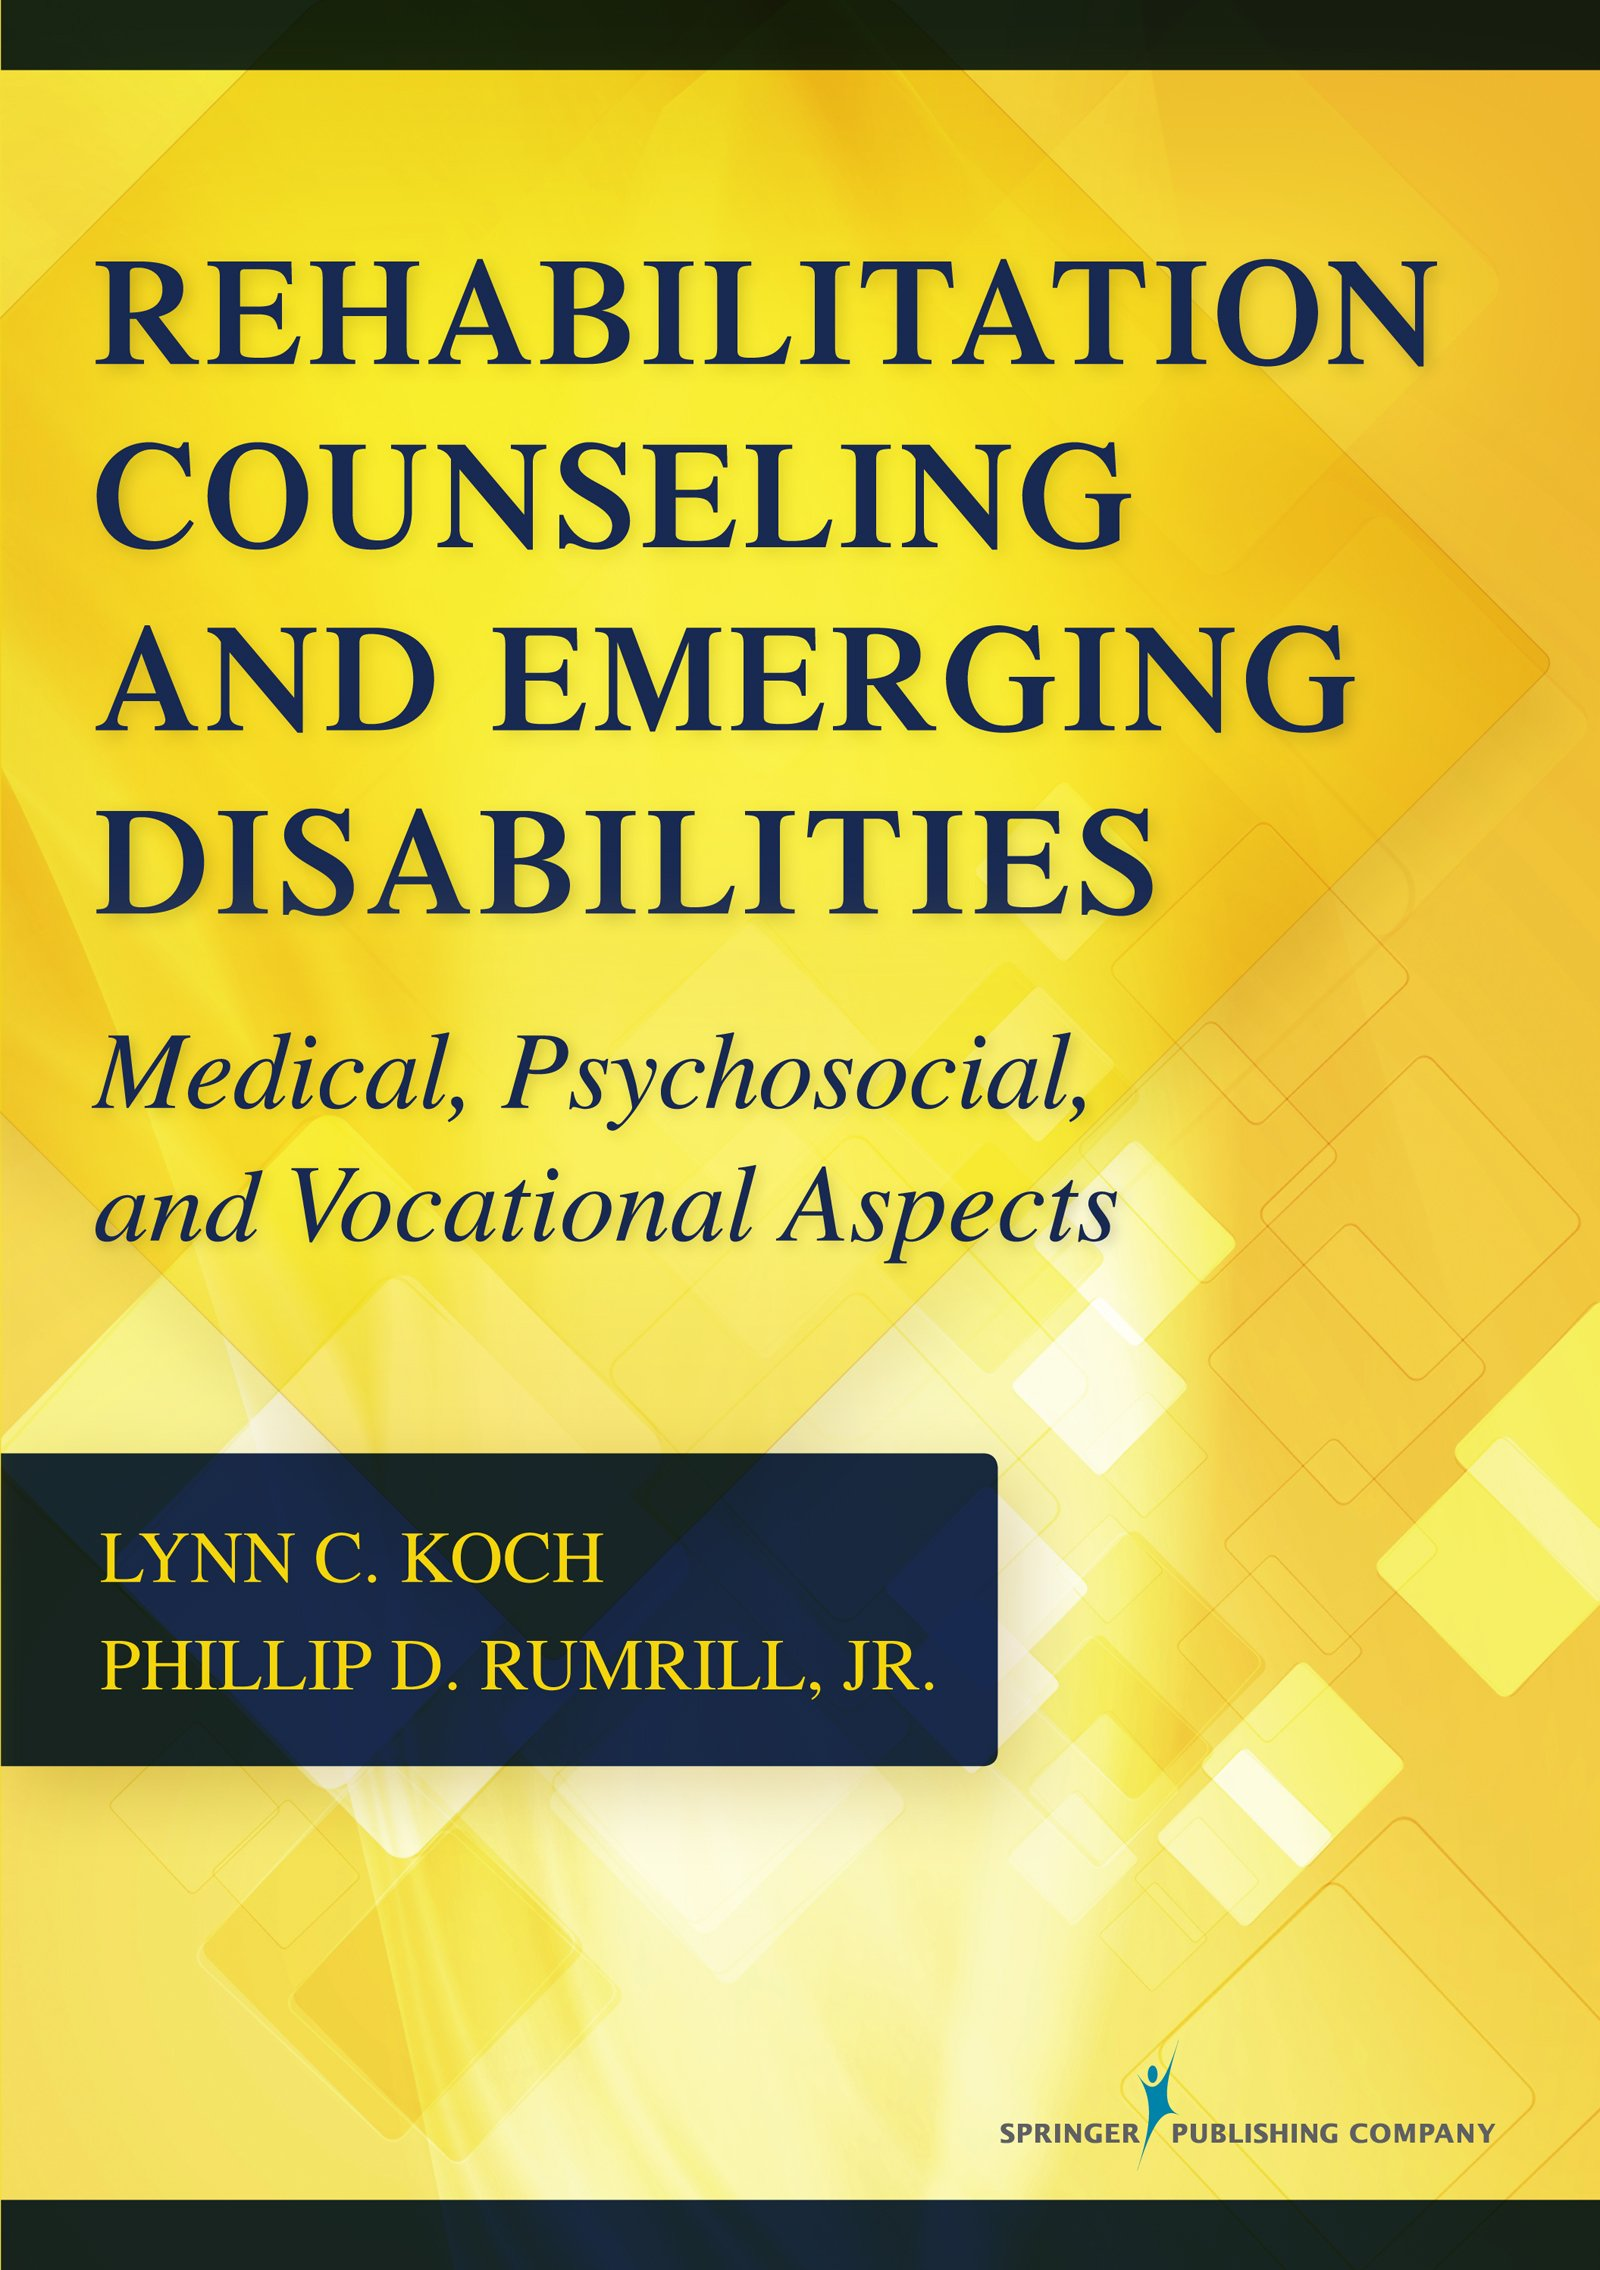 Rehabilitation Counseling and Emerging Disabilities: Medical, Psychosocial, and Vocational Aspects